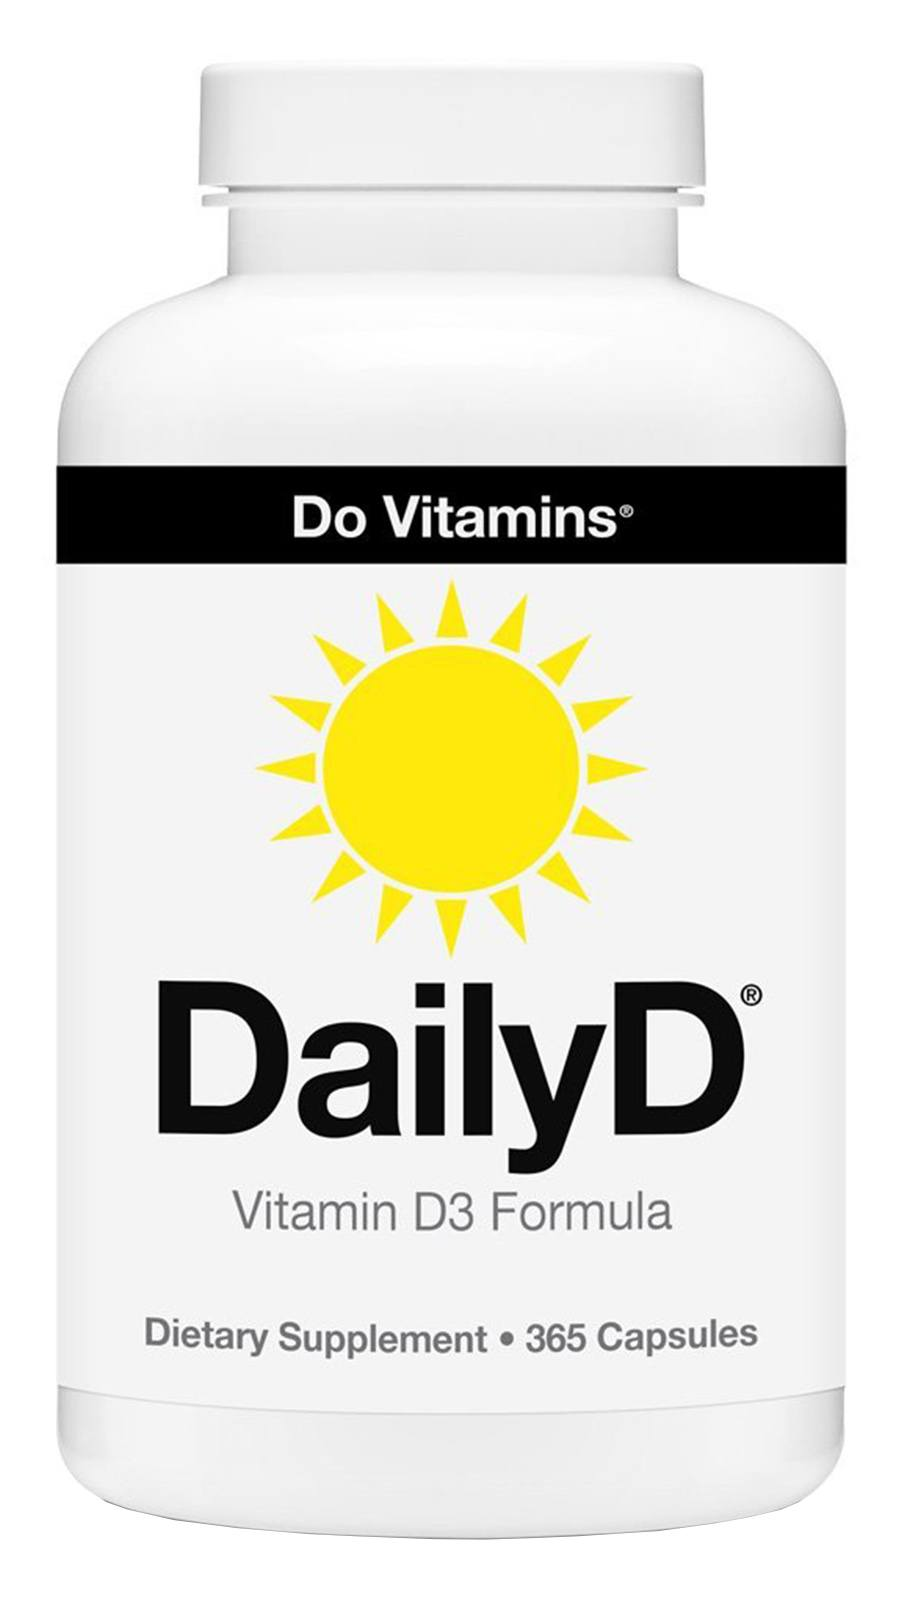 DailyD Vegan Vitamin D3 Formula with Vitashine